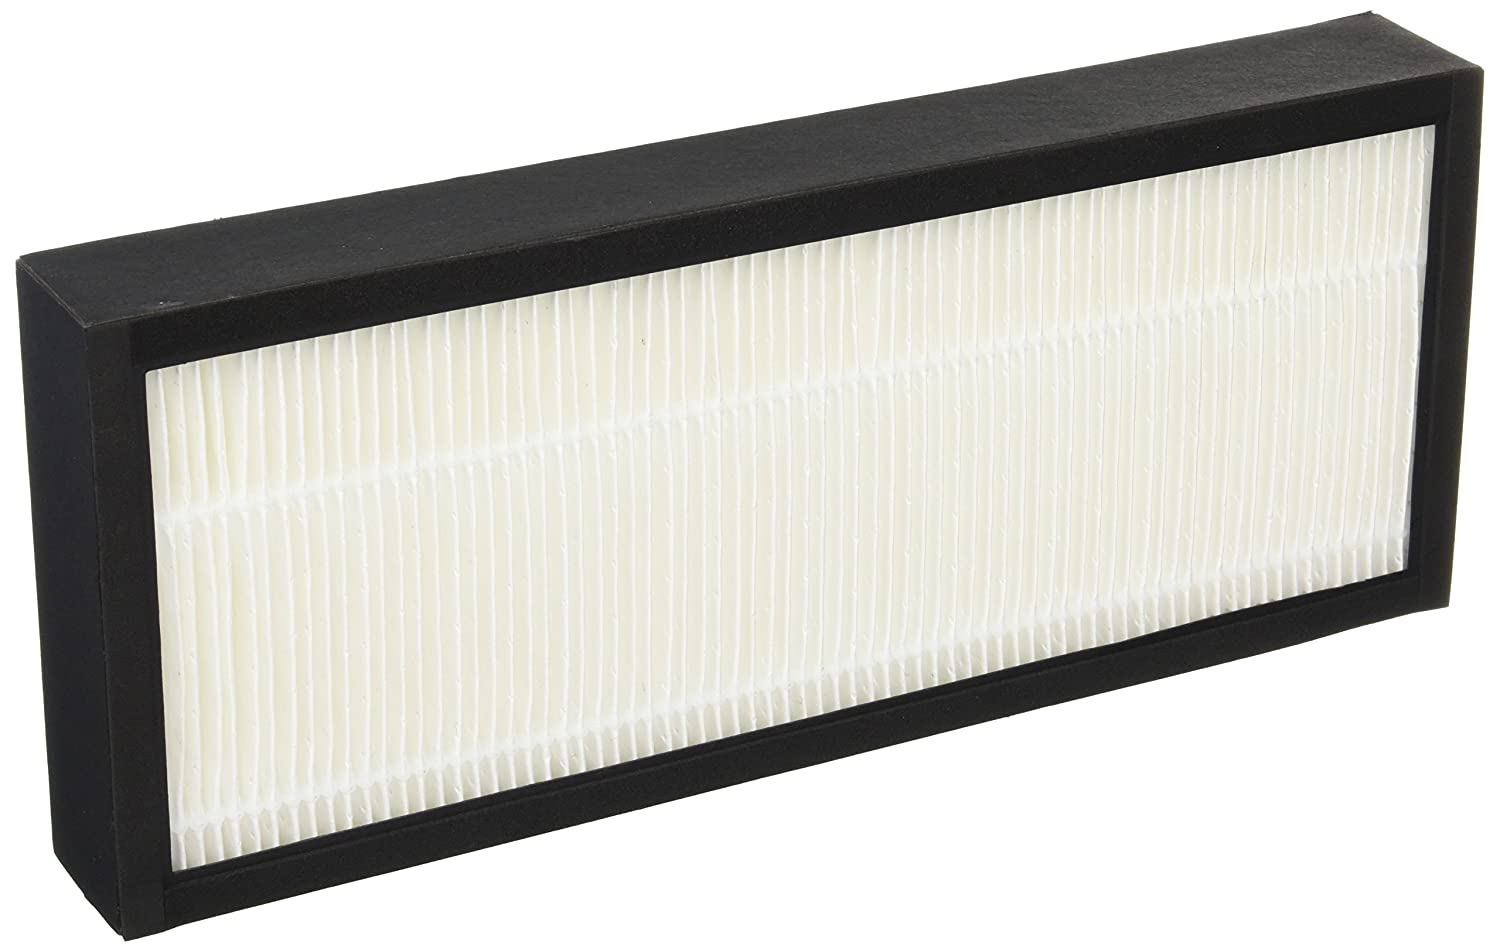 Oreck Replacement Filter Kit Refresh 2-in-1 Air Purifier and Humidifier WK15500B AK45510